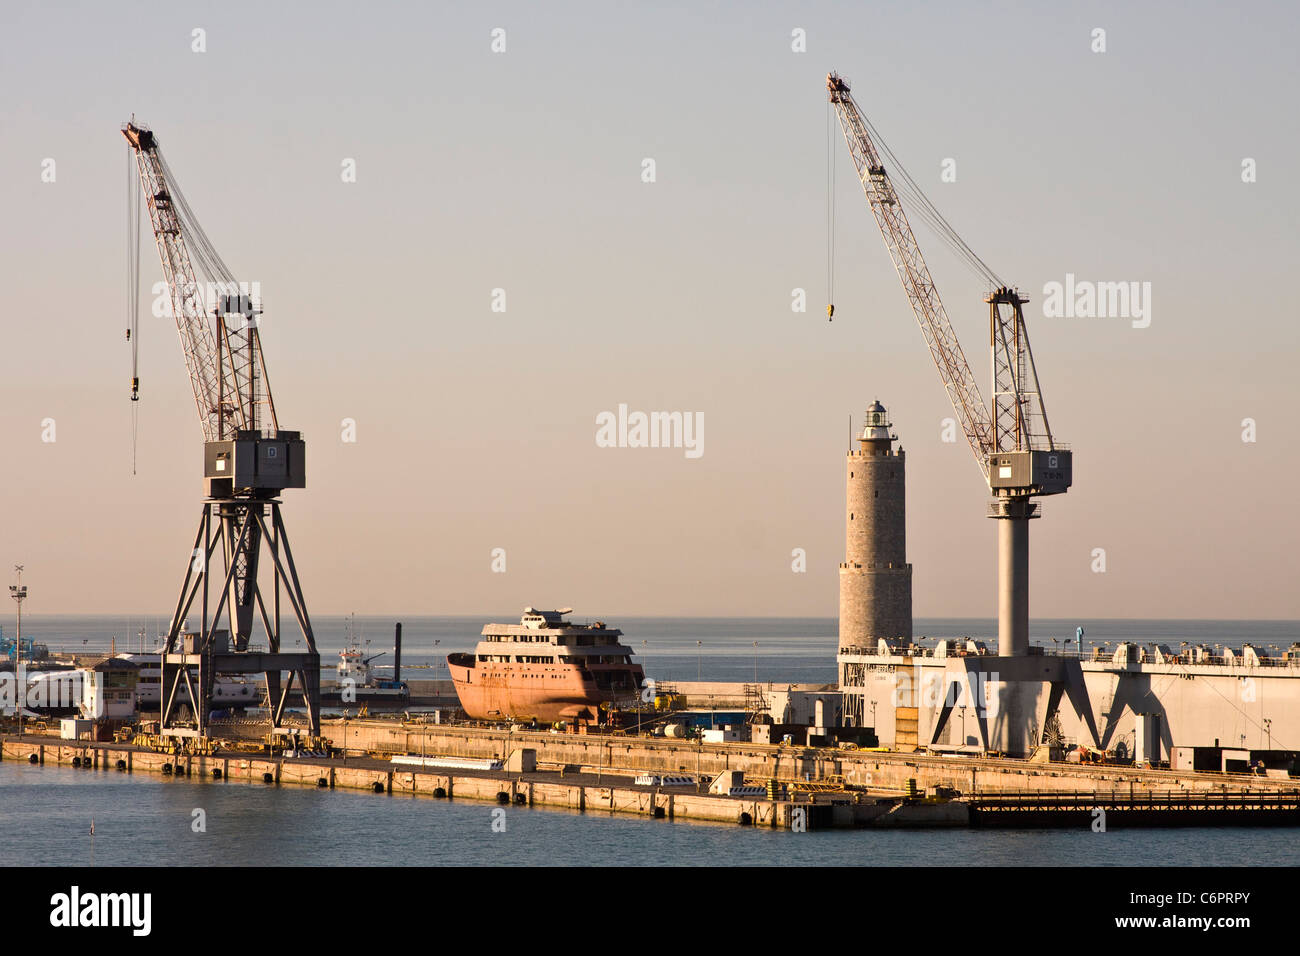 Cranes in a dry dock lit by early morning light - Stock Image